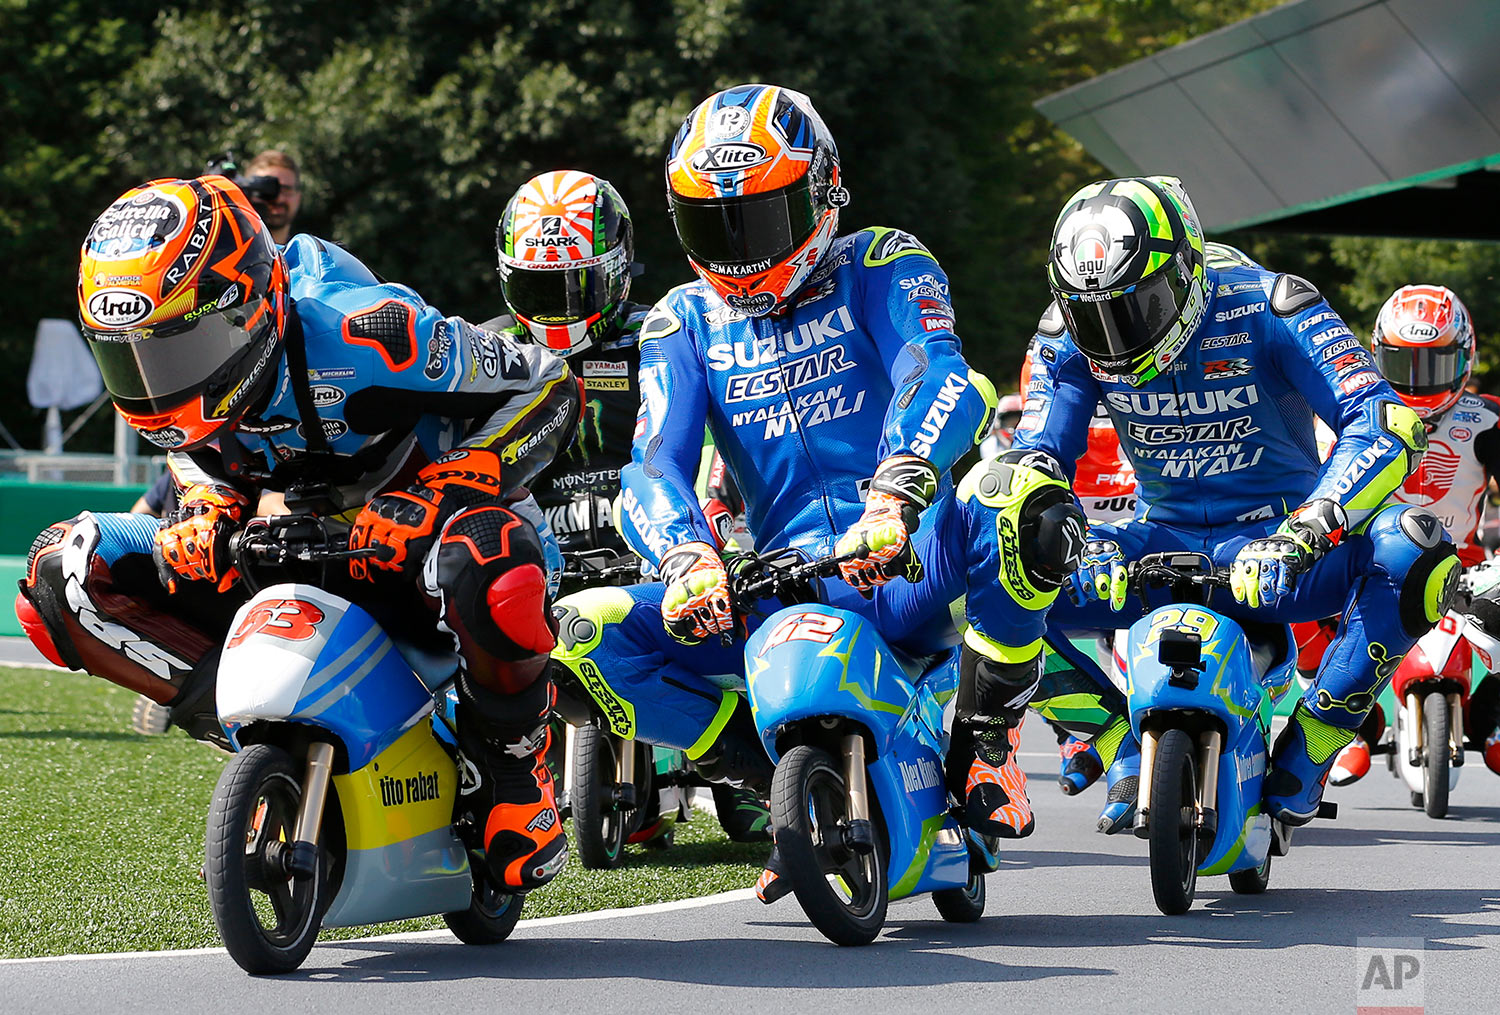 In this Tuesday, Oct. 10, 2017, photo, MotoGP rider Tito Rabat, left, of Spain steers his mini electric motorcycle as he leads the pack of riders during a fan event at the Twin Ring Motegi circuit ahead of the MotoGP Japanese Motorcycle Grand Prix in Motegi, north of Tokyo. (AP Photo/Shizuo Kambayashi)